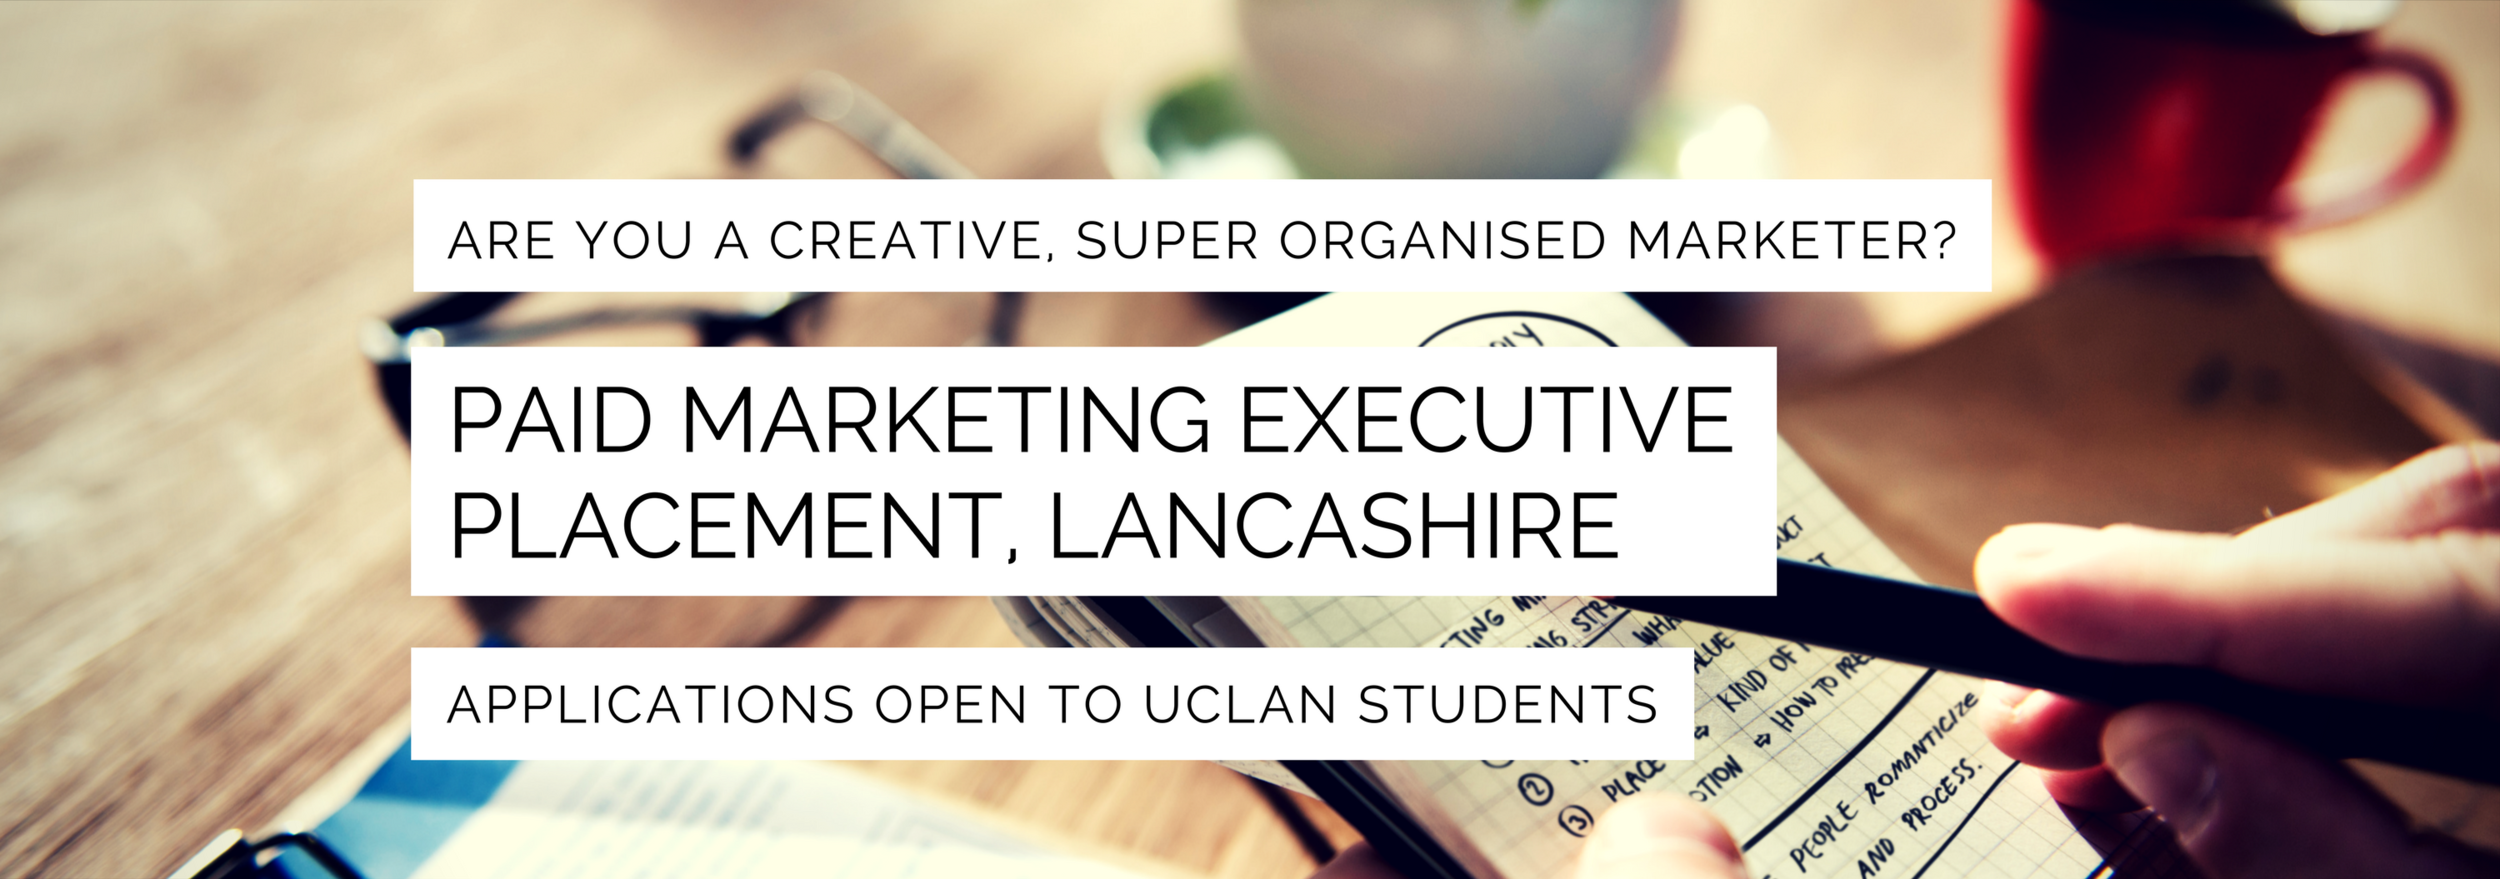 Apply now - Paid Marketing Executive Placement, Lancashire